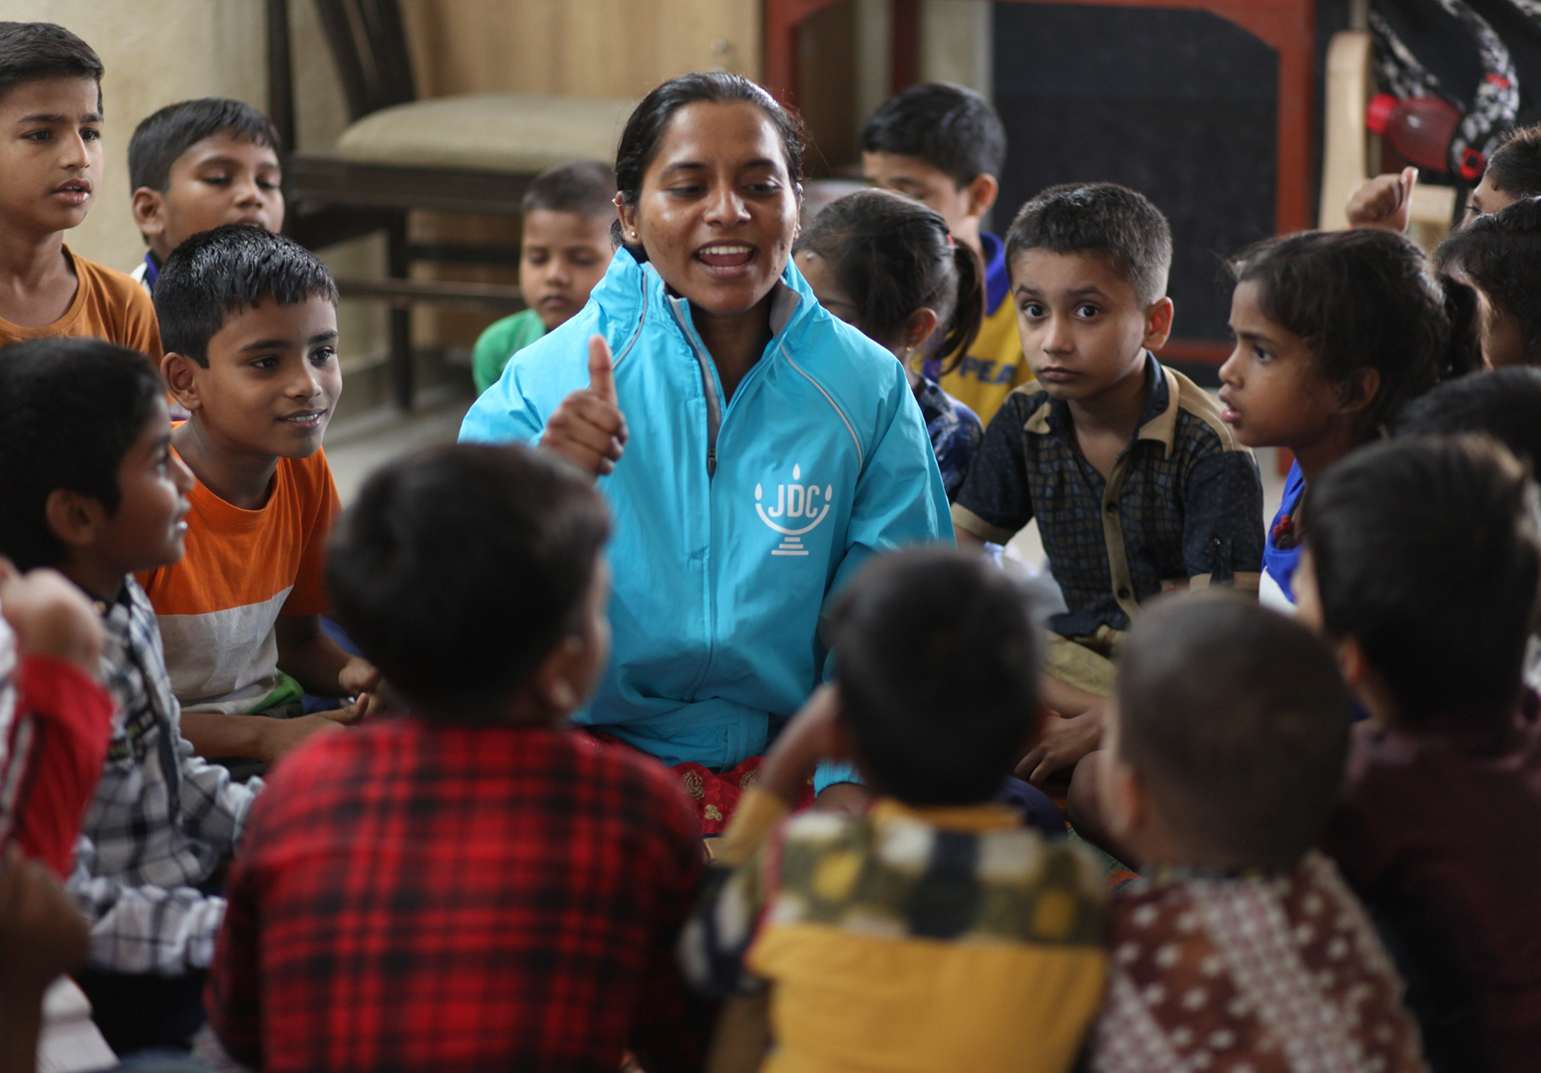 JDC Volunteer in India surrounded by group of young Indian boys smiles and raises her thumb.